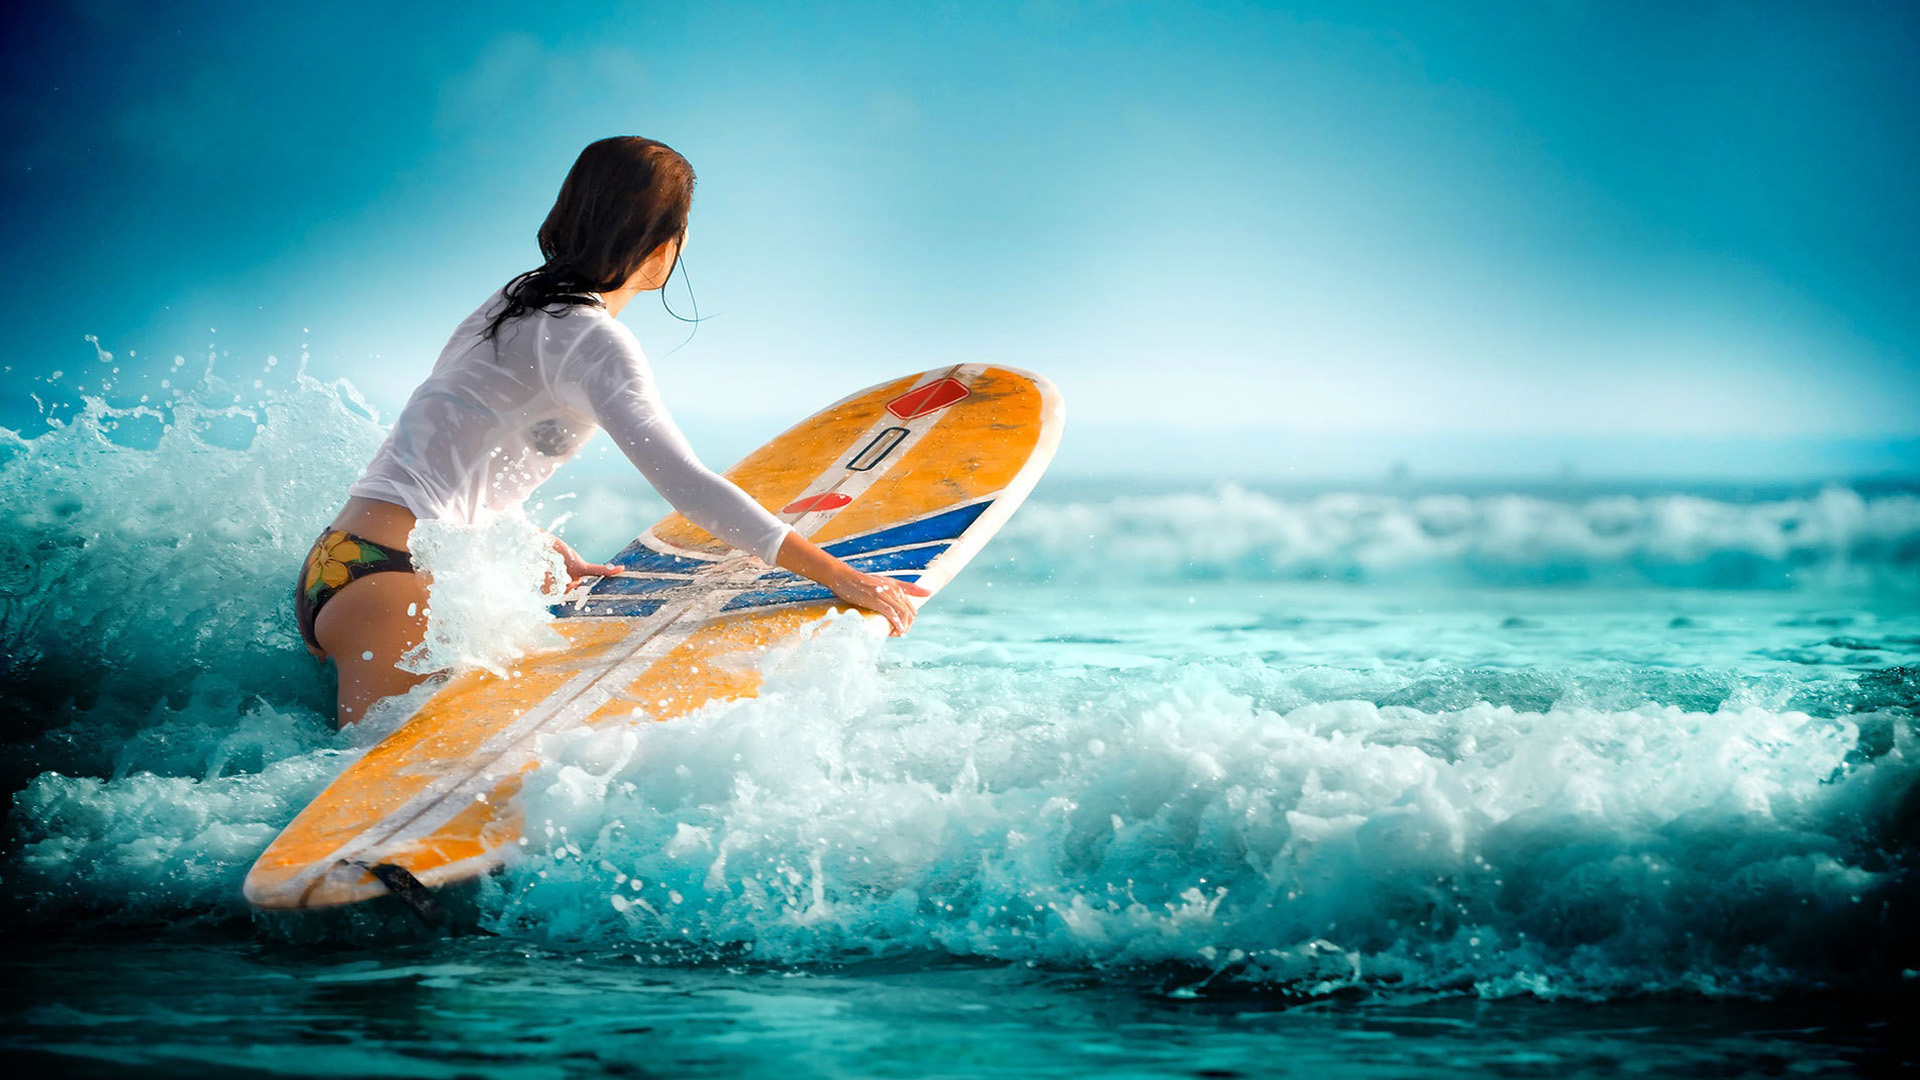 Surfer Girl Wallpapers, Beach Pictures and images